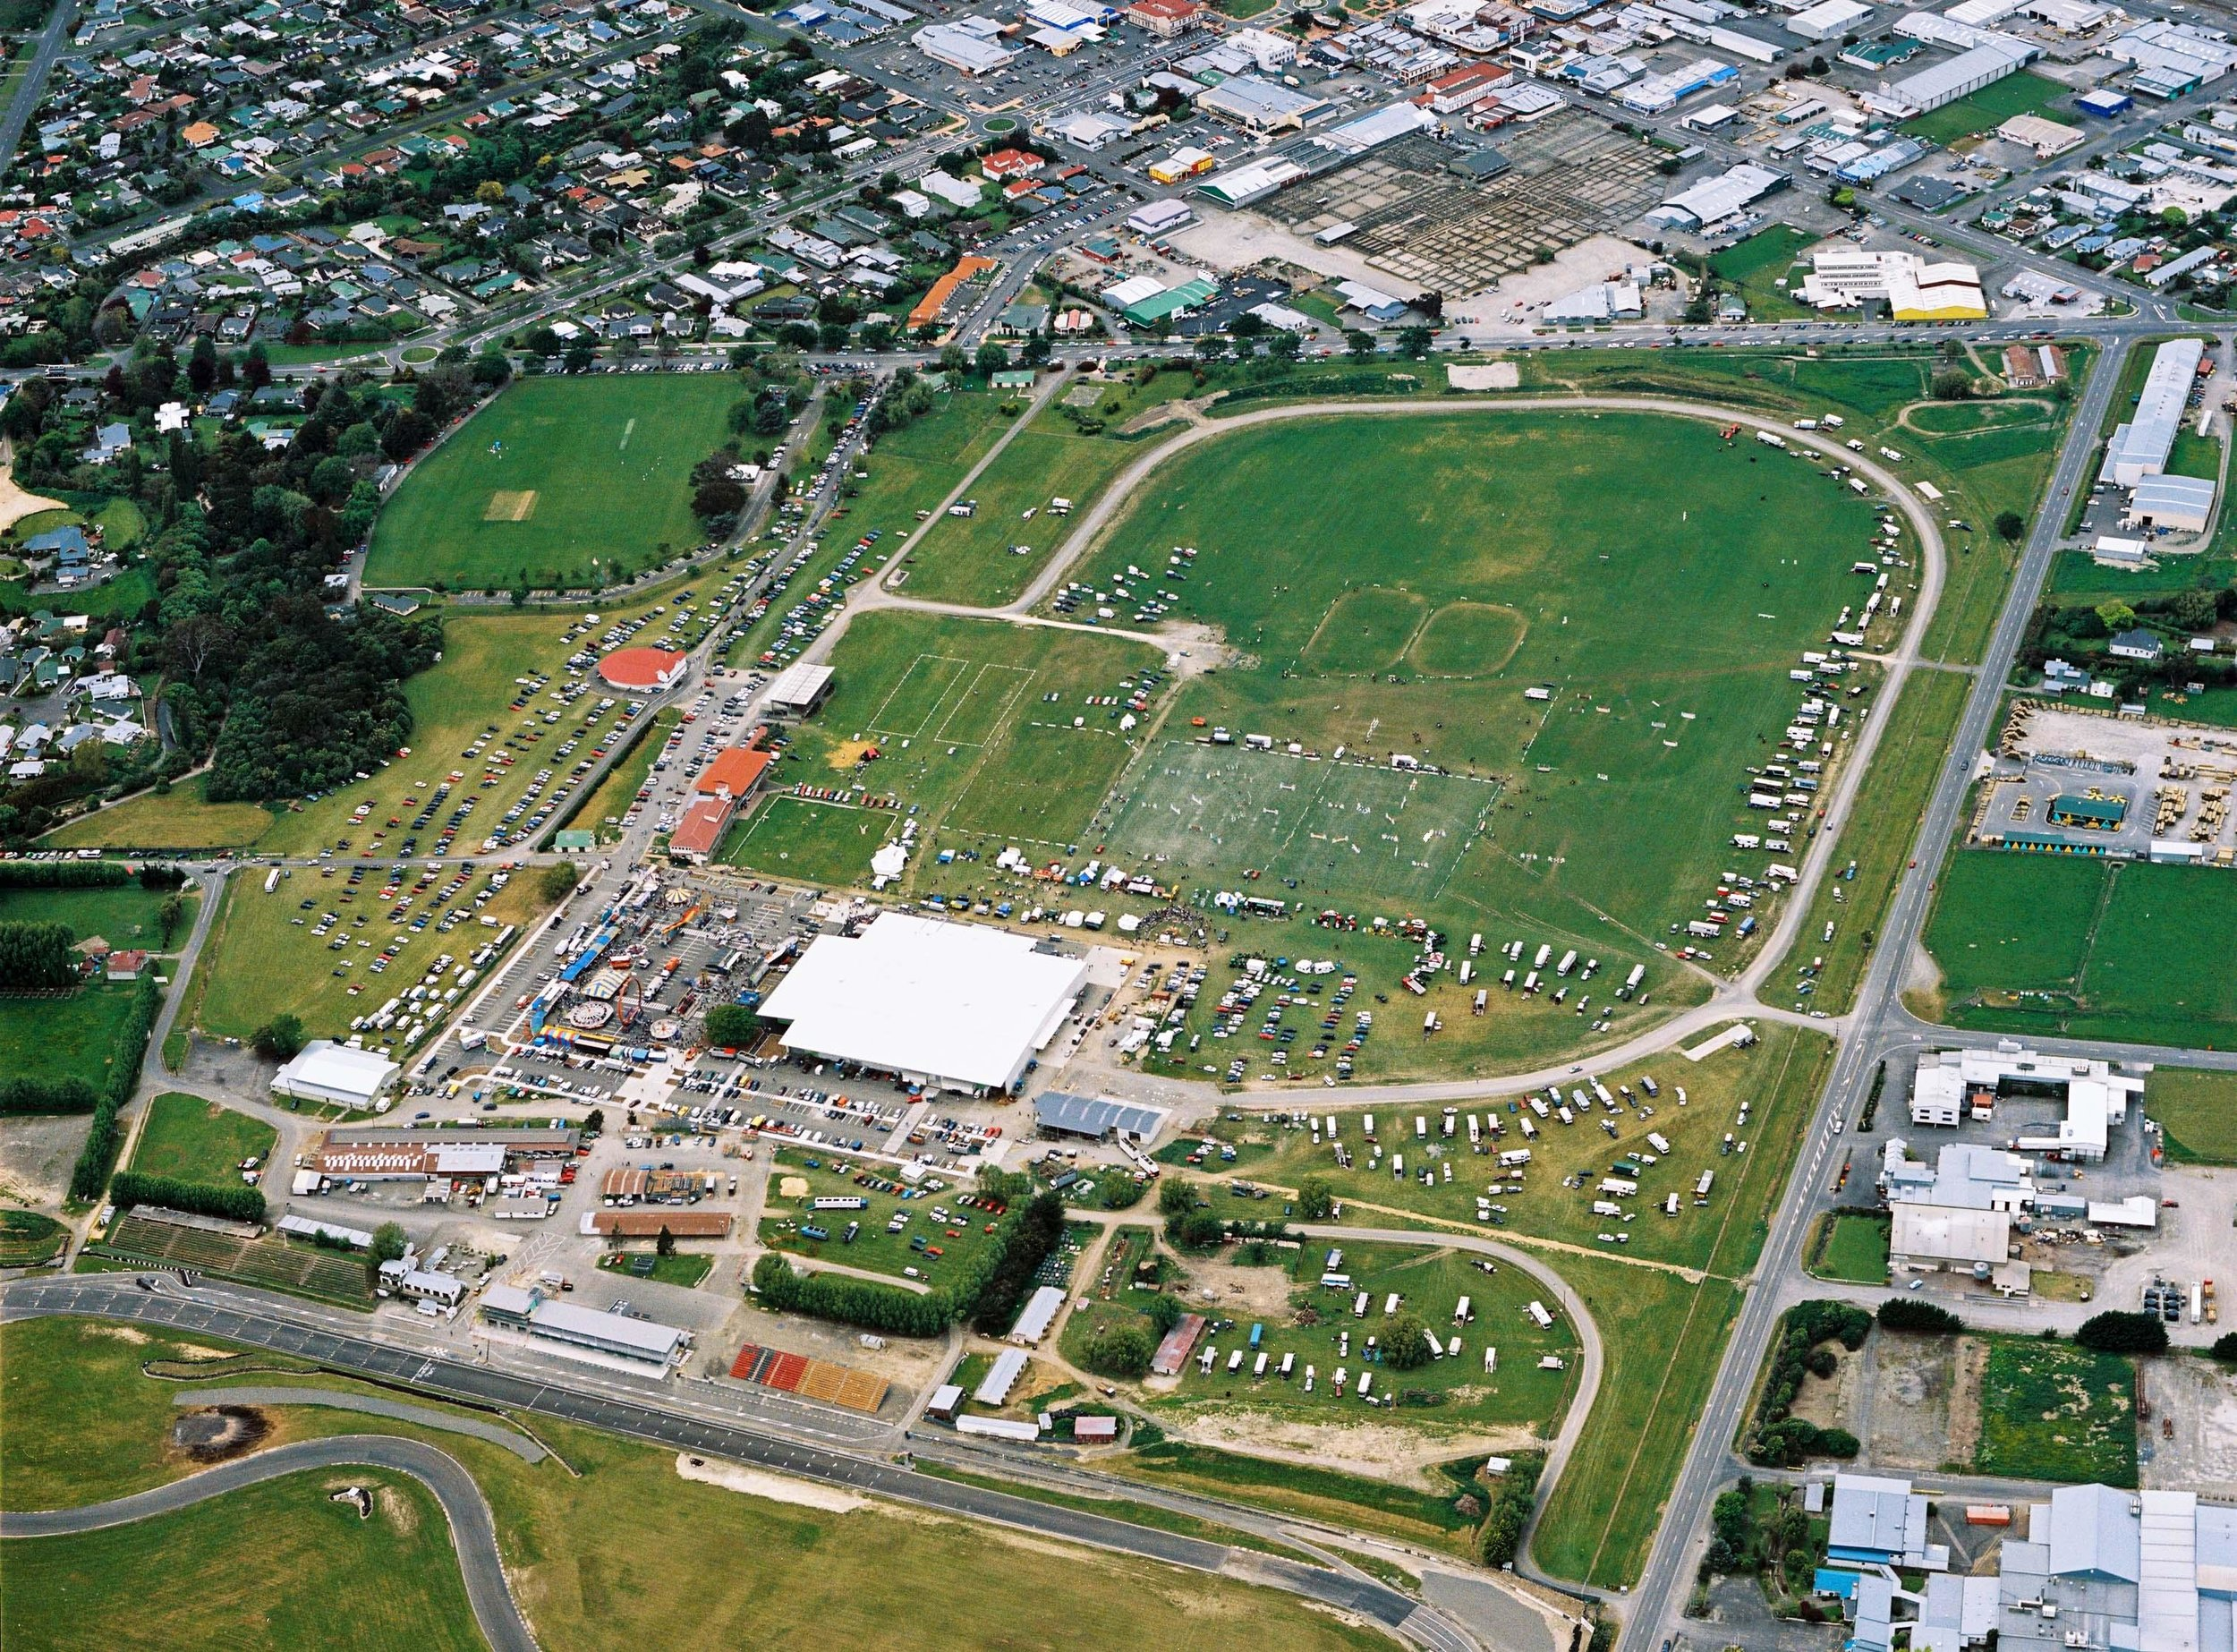 Aerial view of Manfield Park